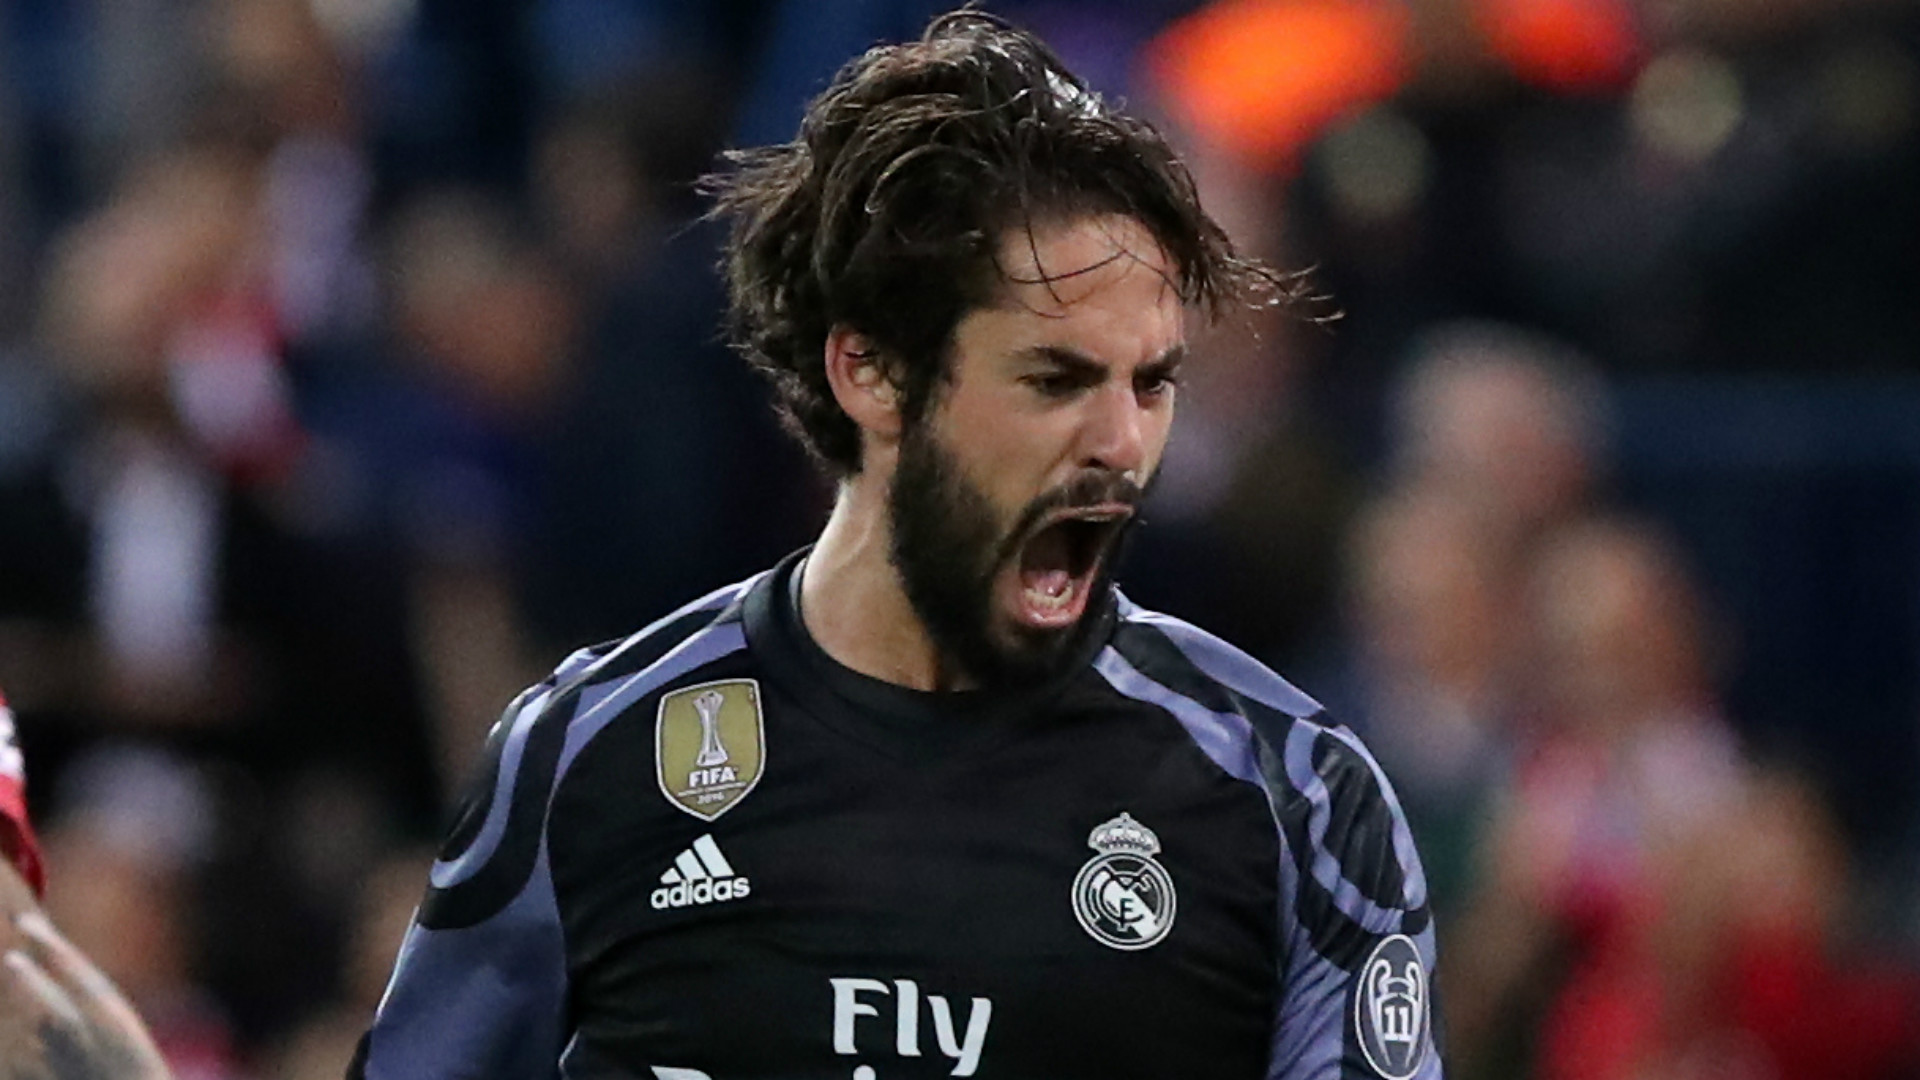 Real Madrid match historic Bayern Munich record thanks to Isco strike